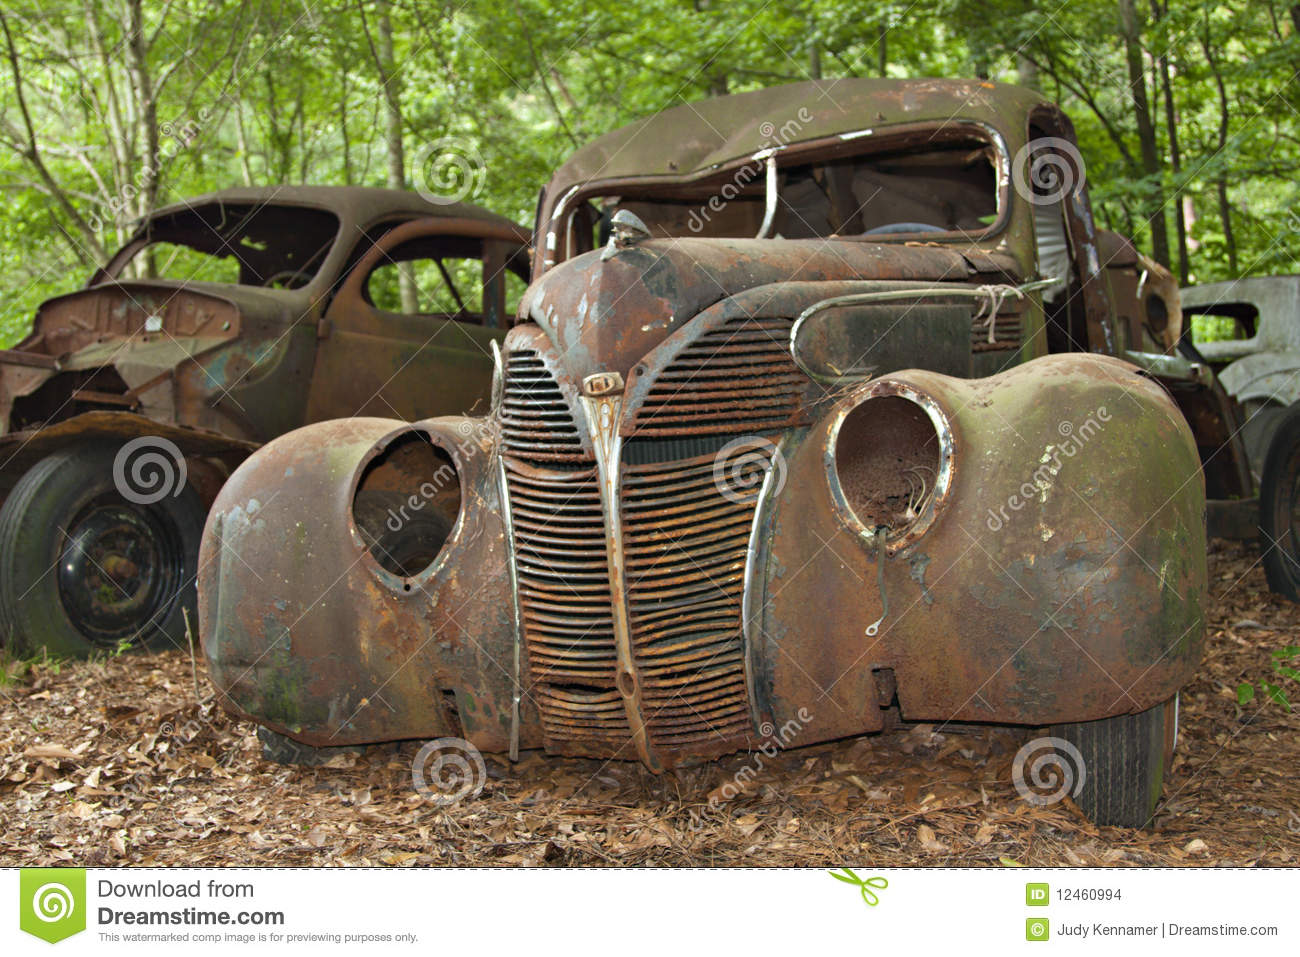 Junkyard car stock photo. Image of horizontal, glass - 12460994